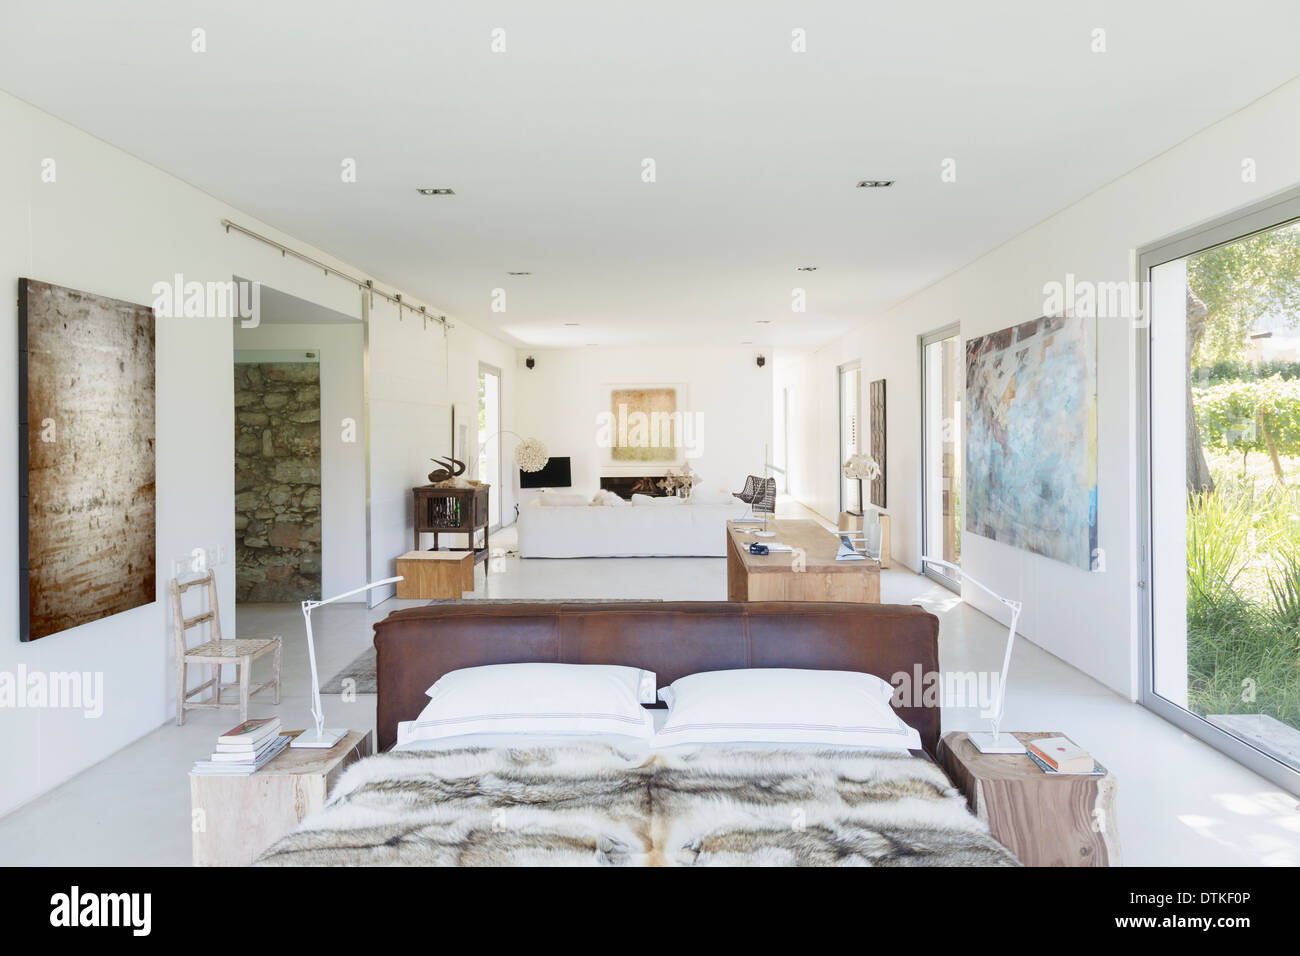 Open Floor Plan In Modern House Stock Photo 66811718 Alamy